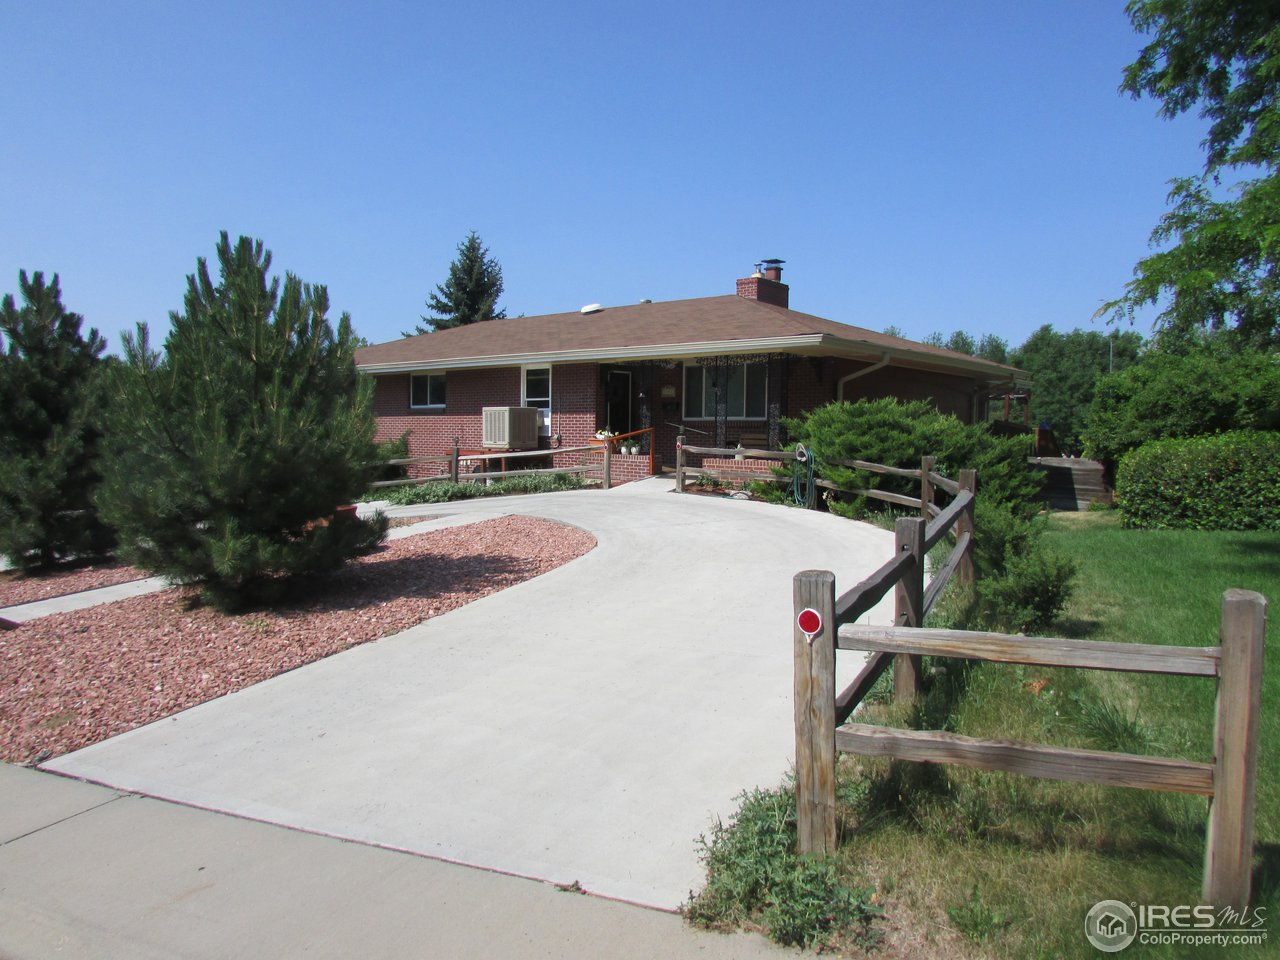 2001 Evergreen Dr, Fort Collins CO 80521